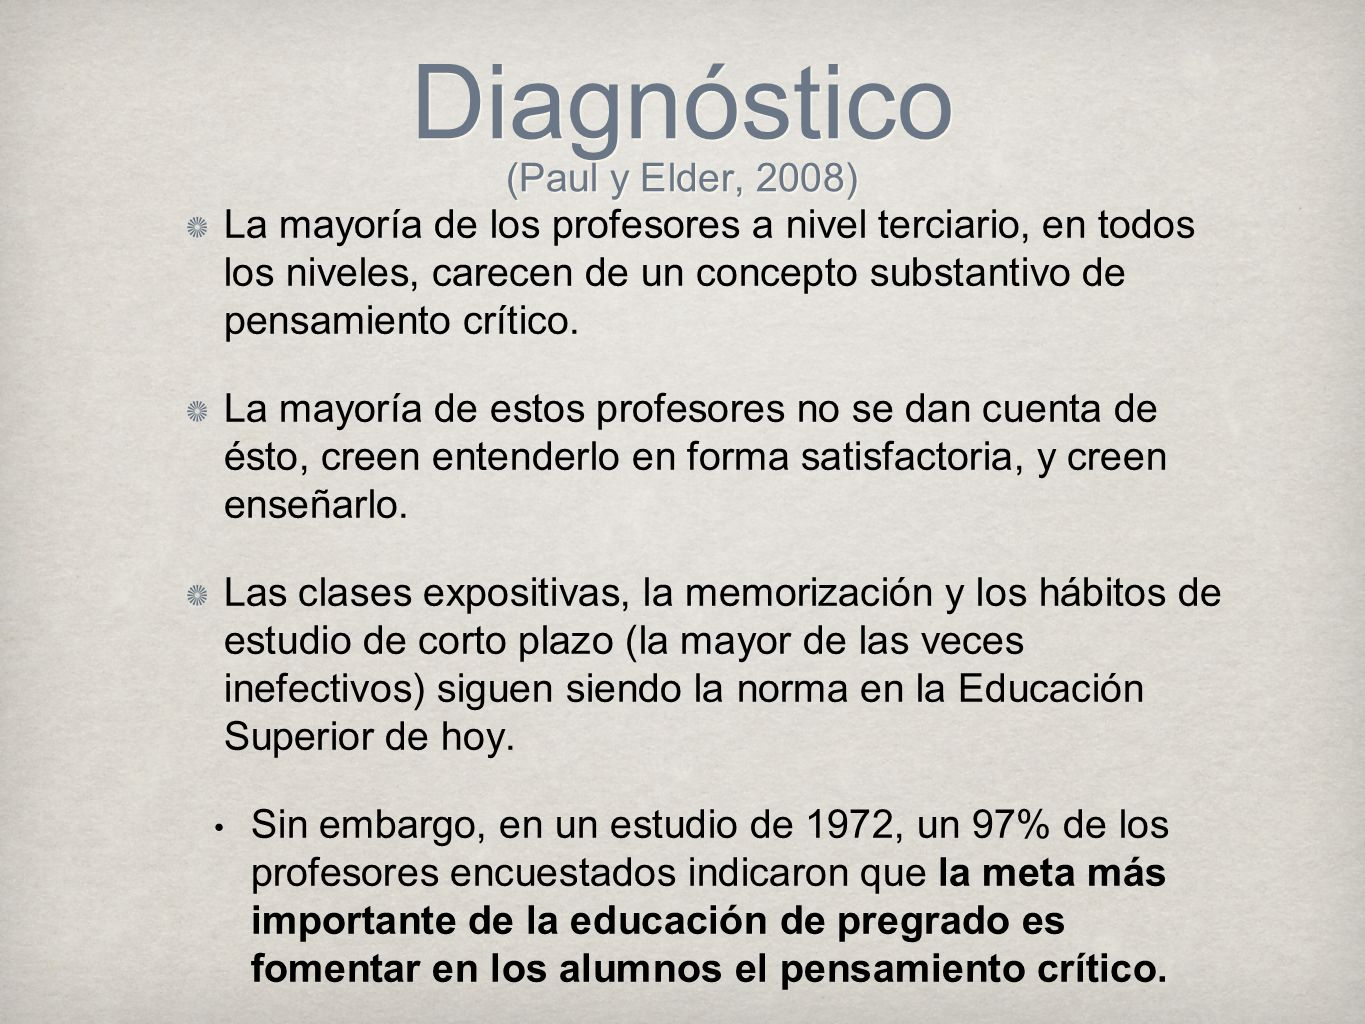 Diagnóstico (Paul y Elder, 2008)